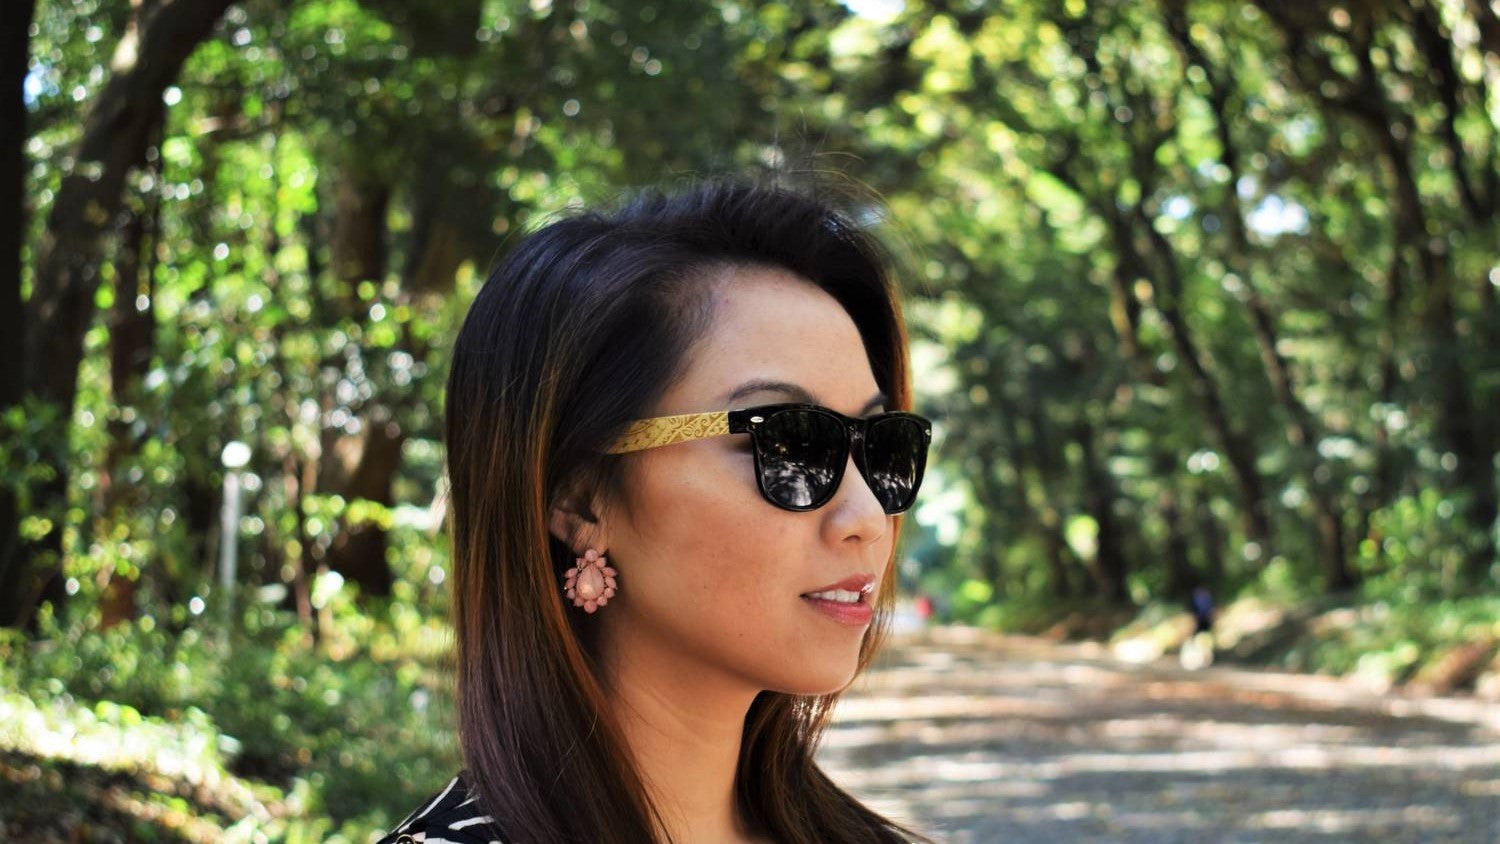 Handcrafted Sunglasses For Women